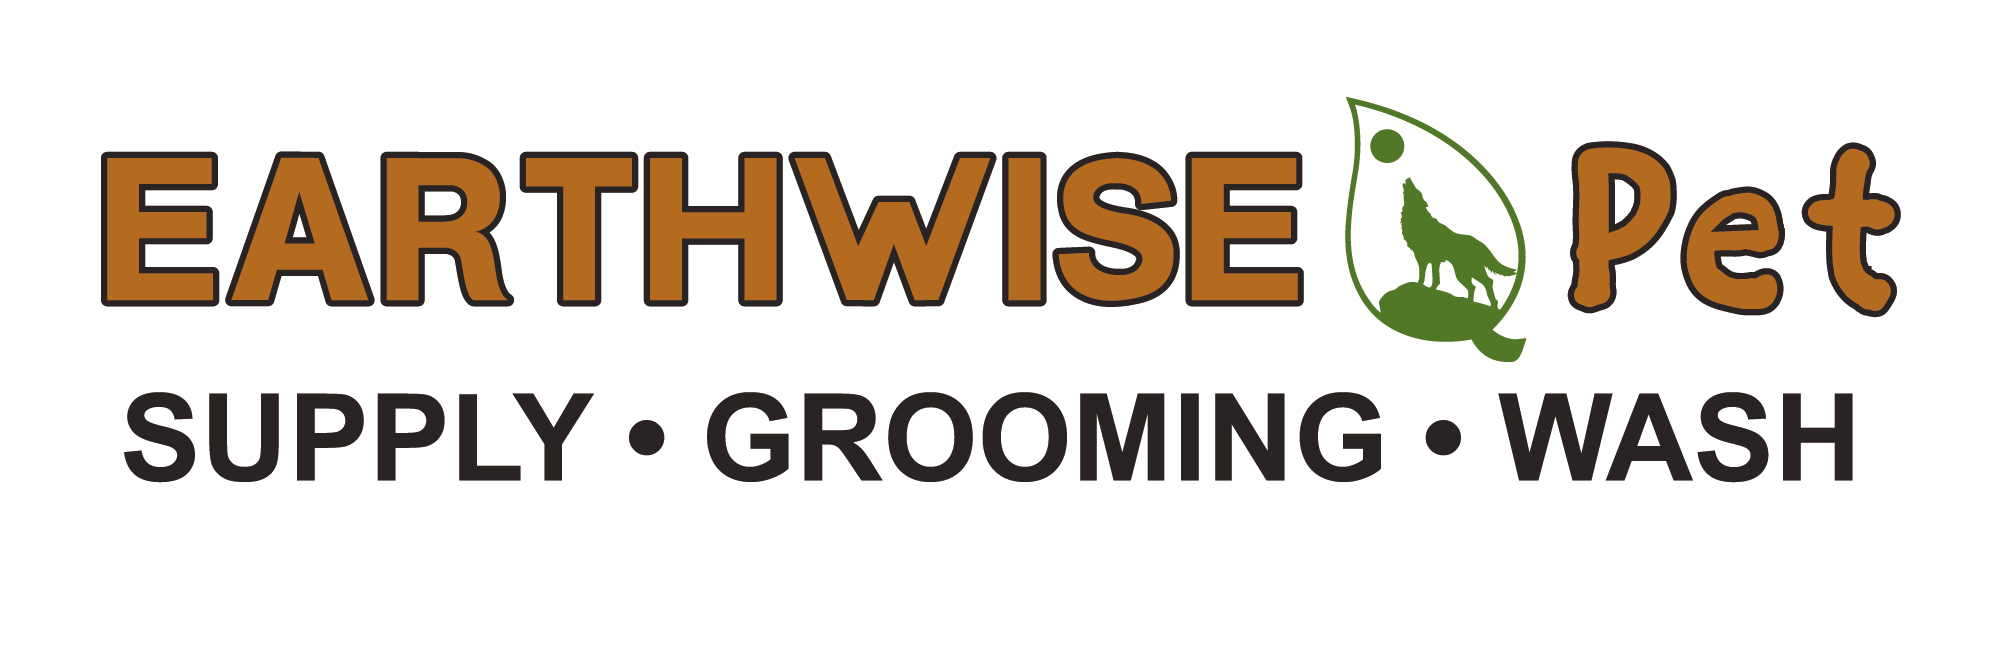 earthwise pet supply   houston tx   company information